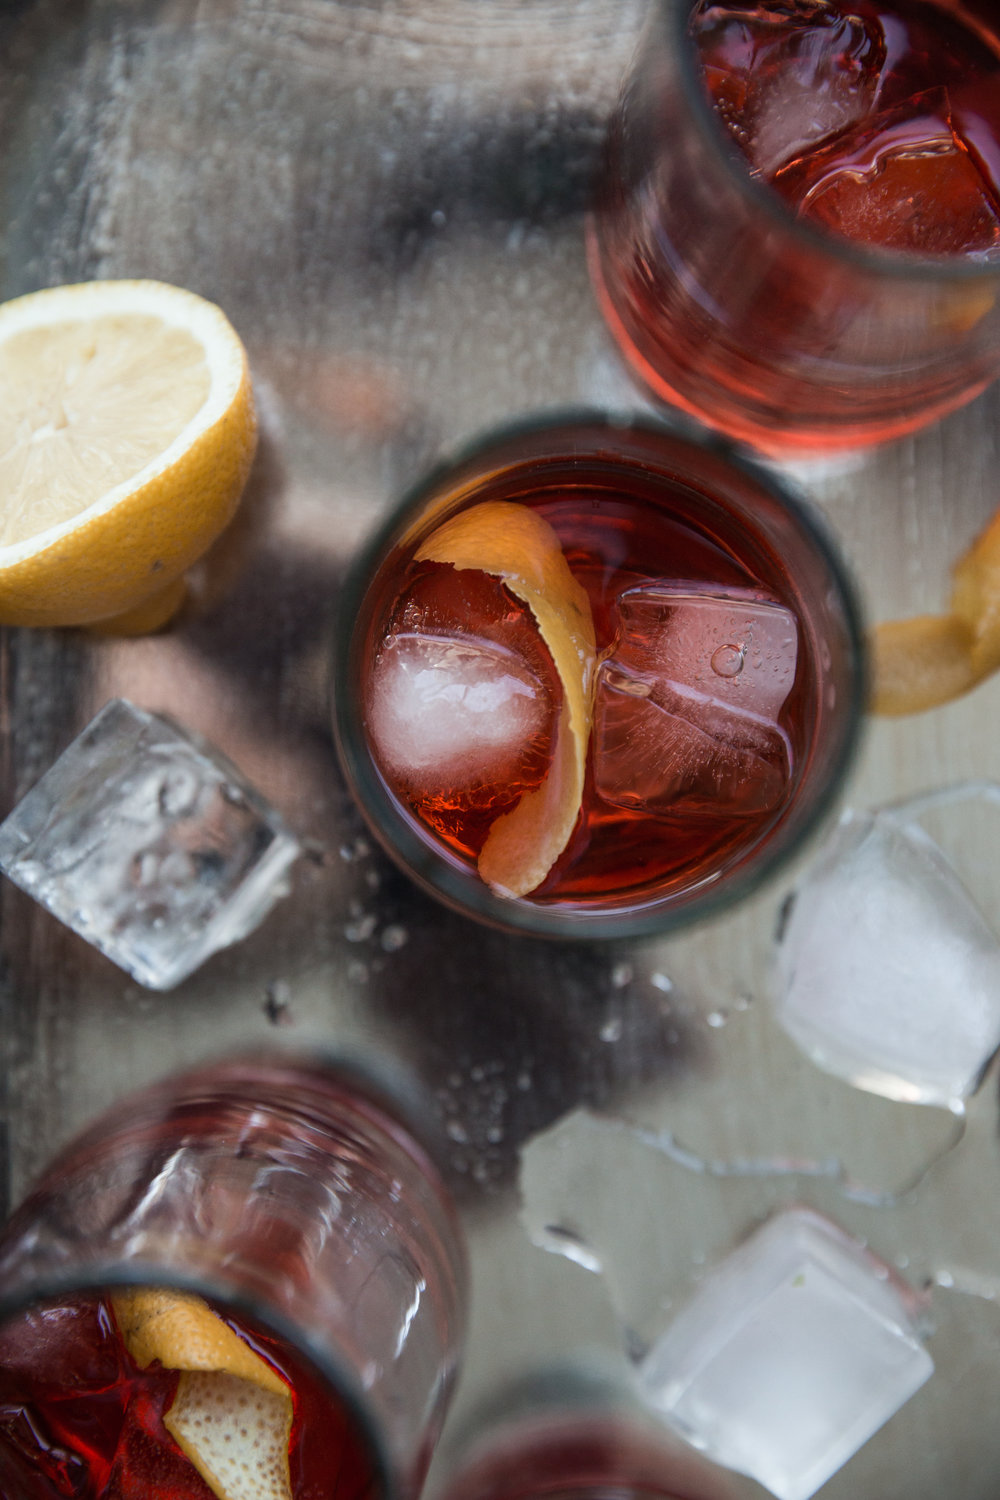 TOAST_HolidayCocktails_LaurenMiller_FoodPhotographer-7653.jpg